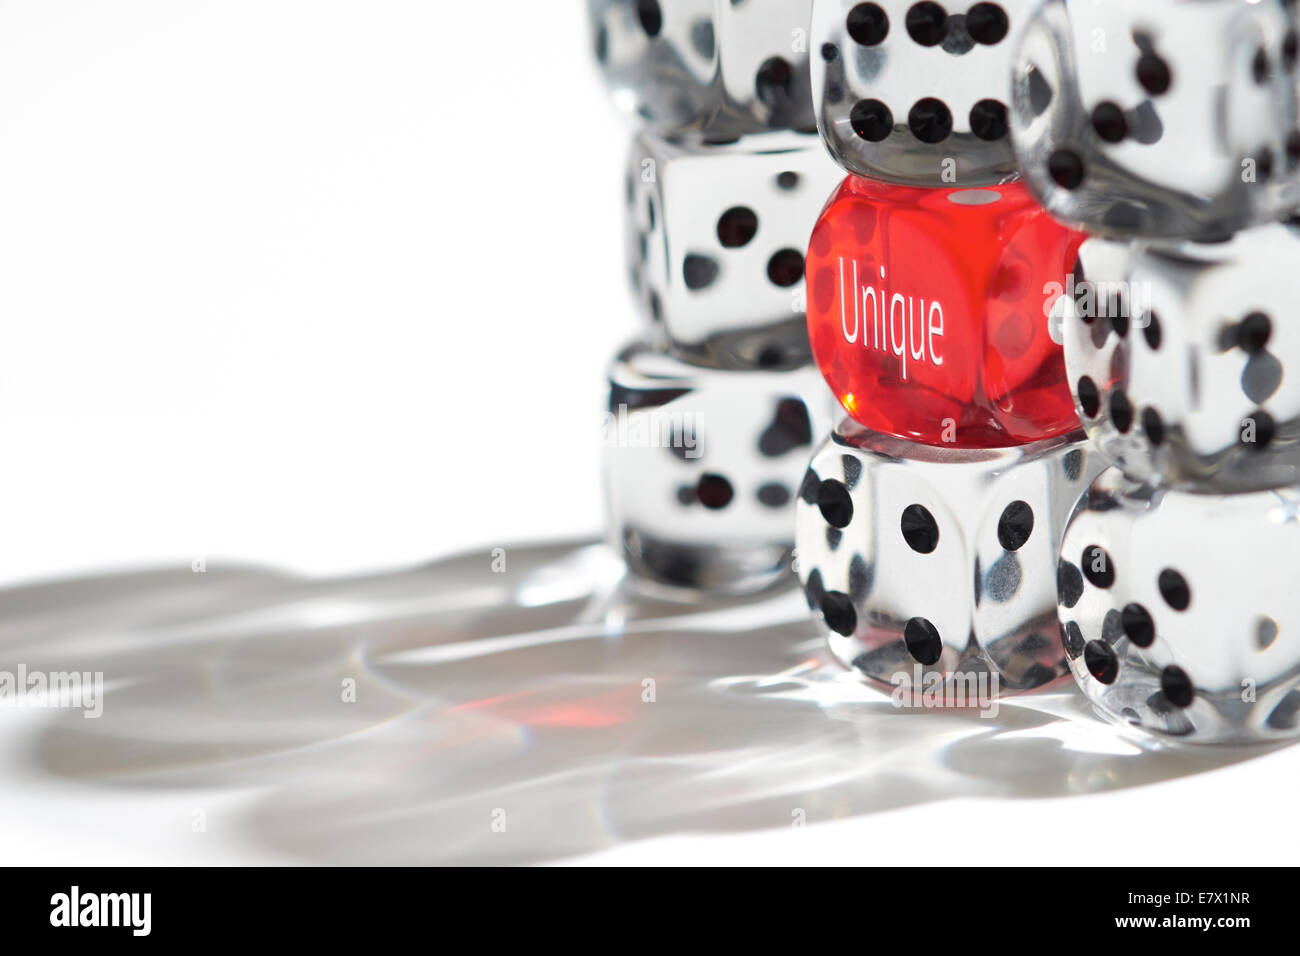 Red Dice Standing out from the crowd, Unique concept. - Stock Image